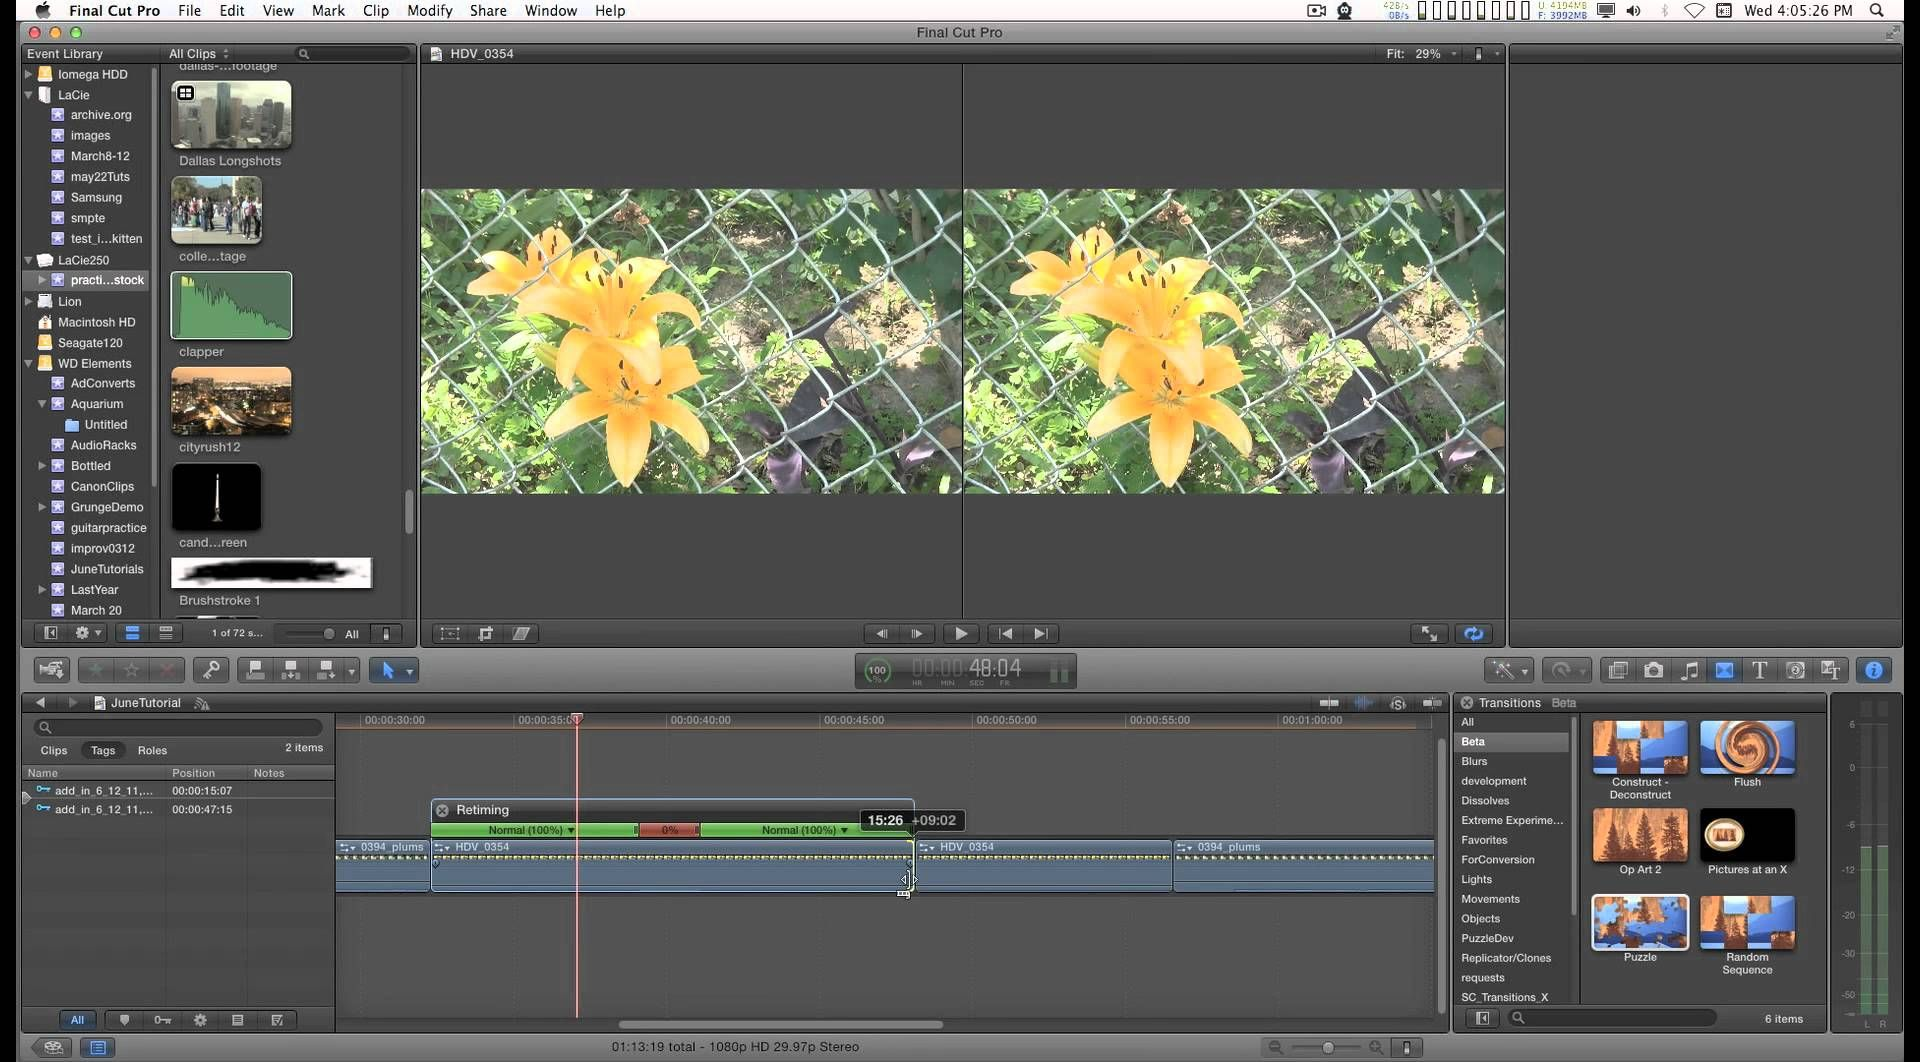 Free Final Cut Pro X (FCPX) Transition: Puzzle and a tutorial on